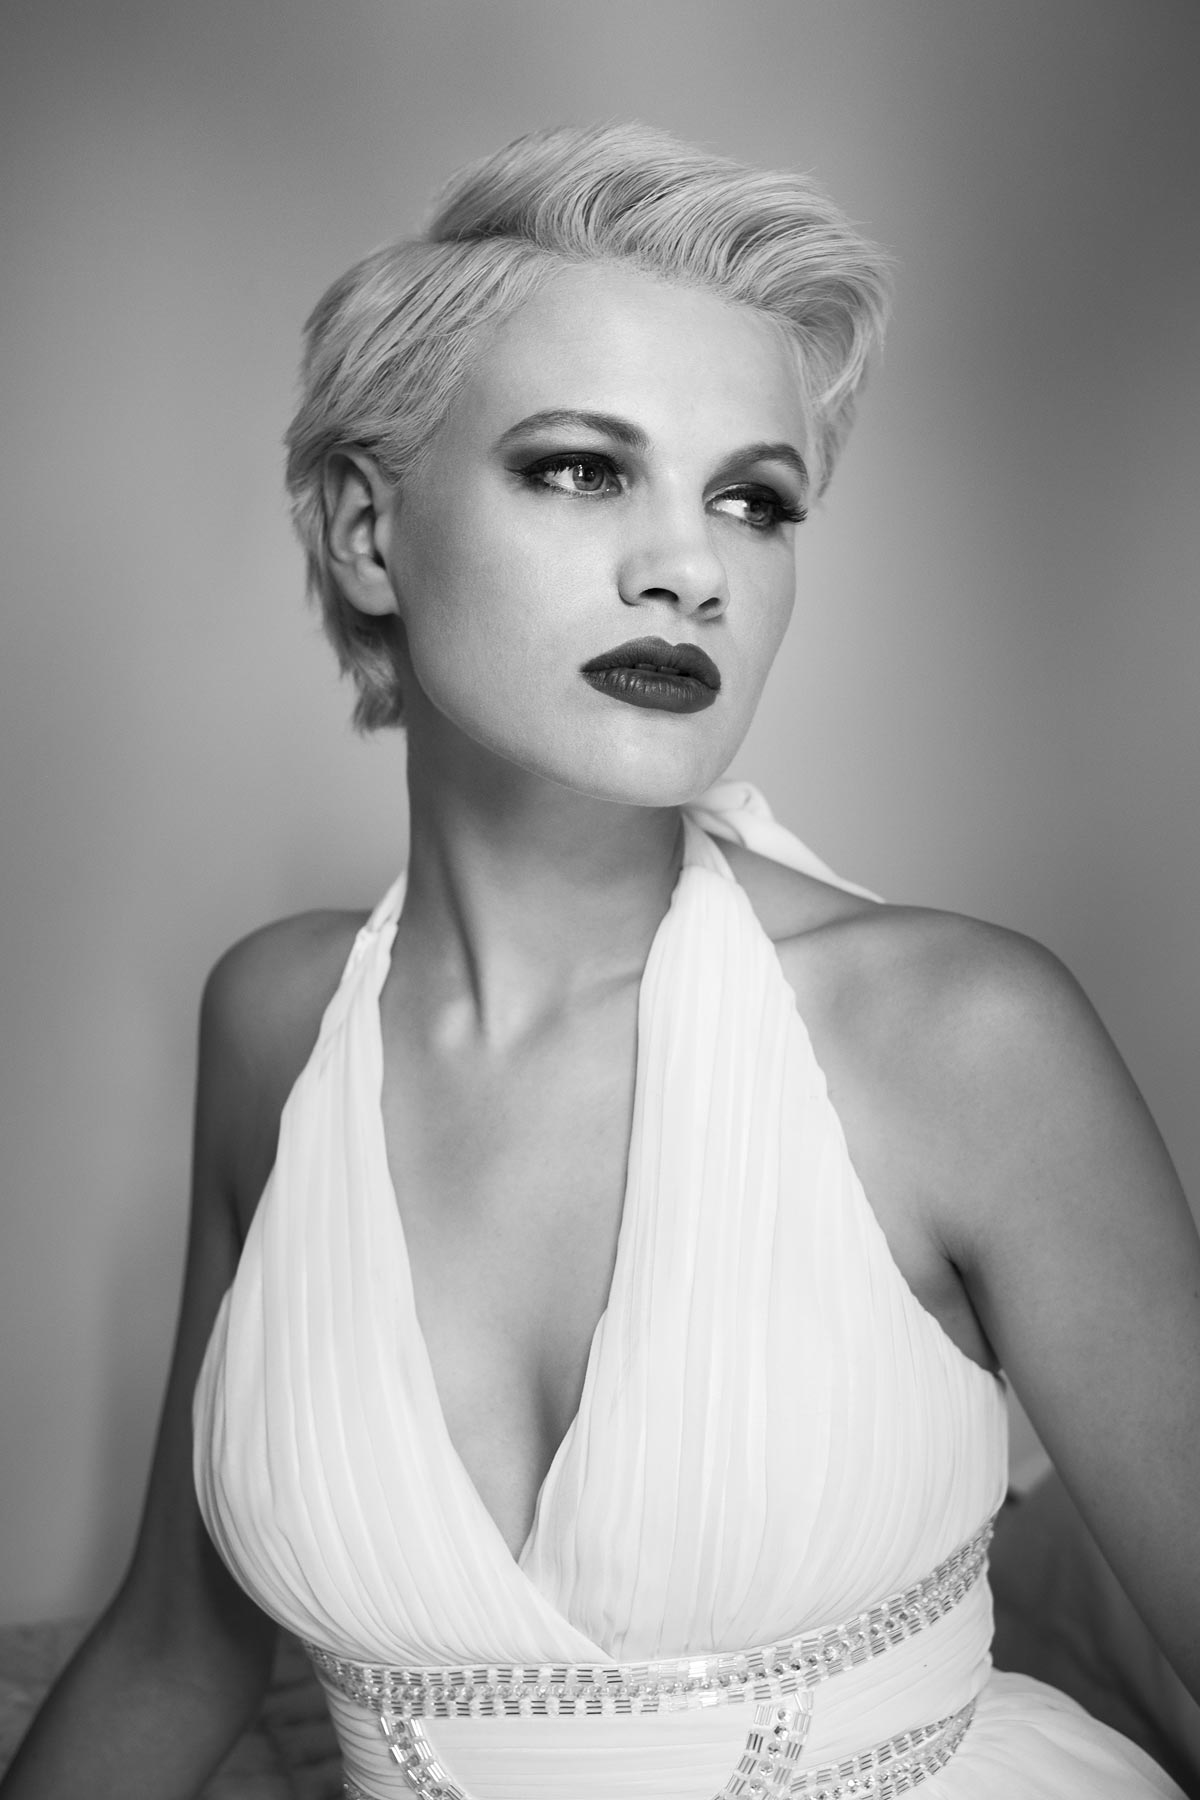 Chloe Jasmine Whichello at Pipewell Hall. Monochrome